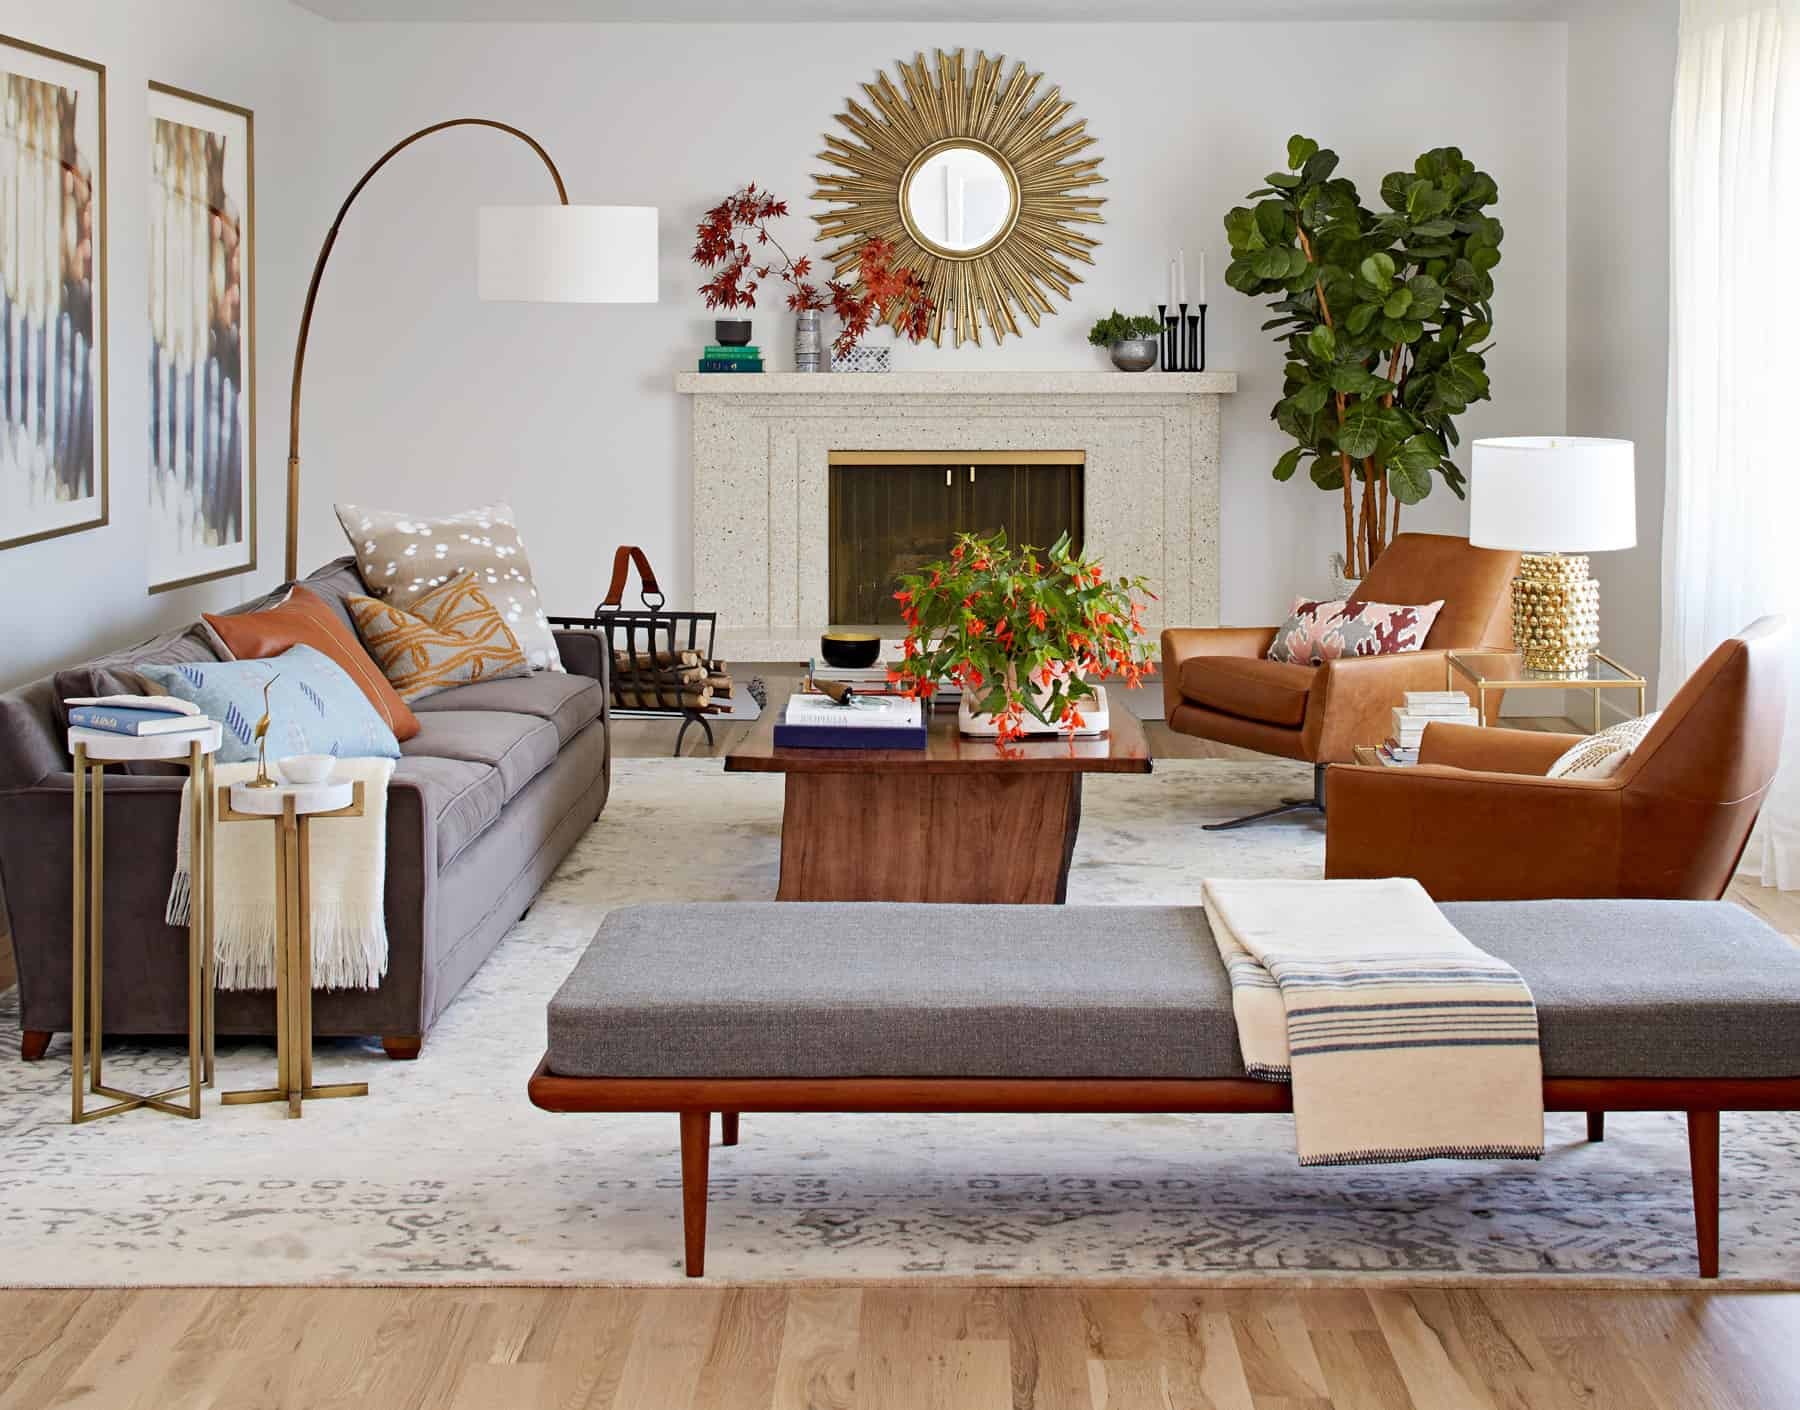 Living Room Makeover: 6 Best Themes For 2021